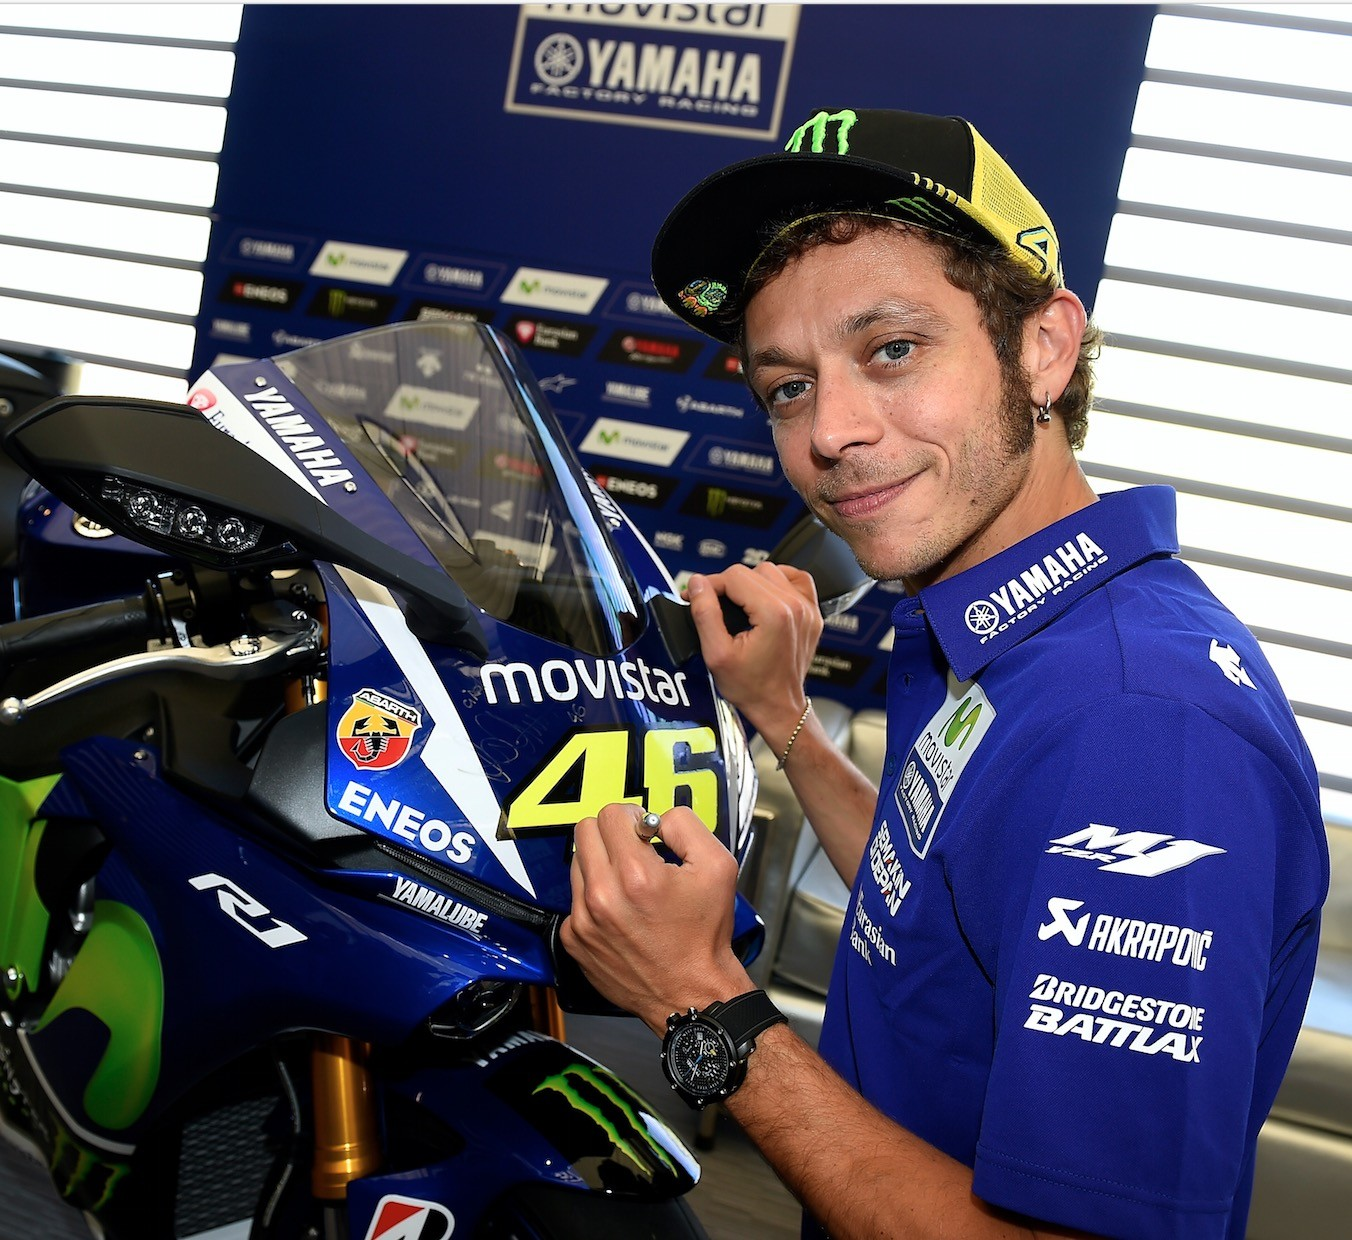 Yamaha R1 in MotoGP Livery Autographed by Valentino Rossi Up for Grabs - autoevolution